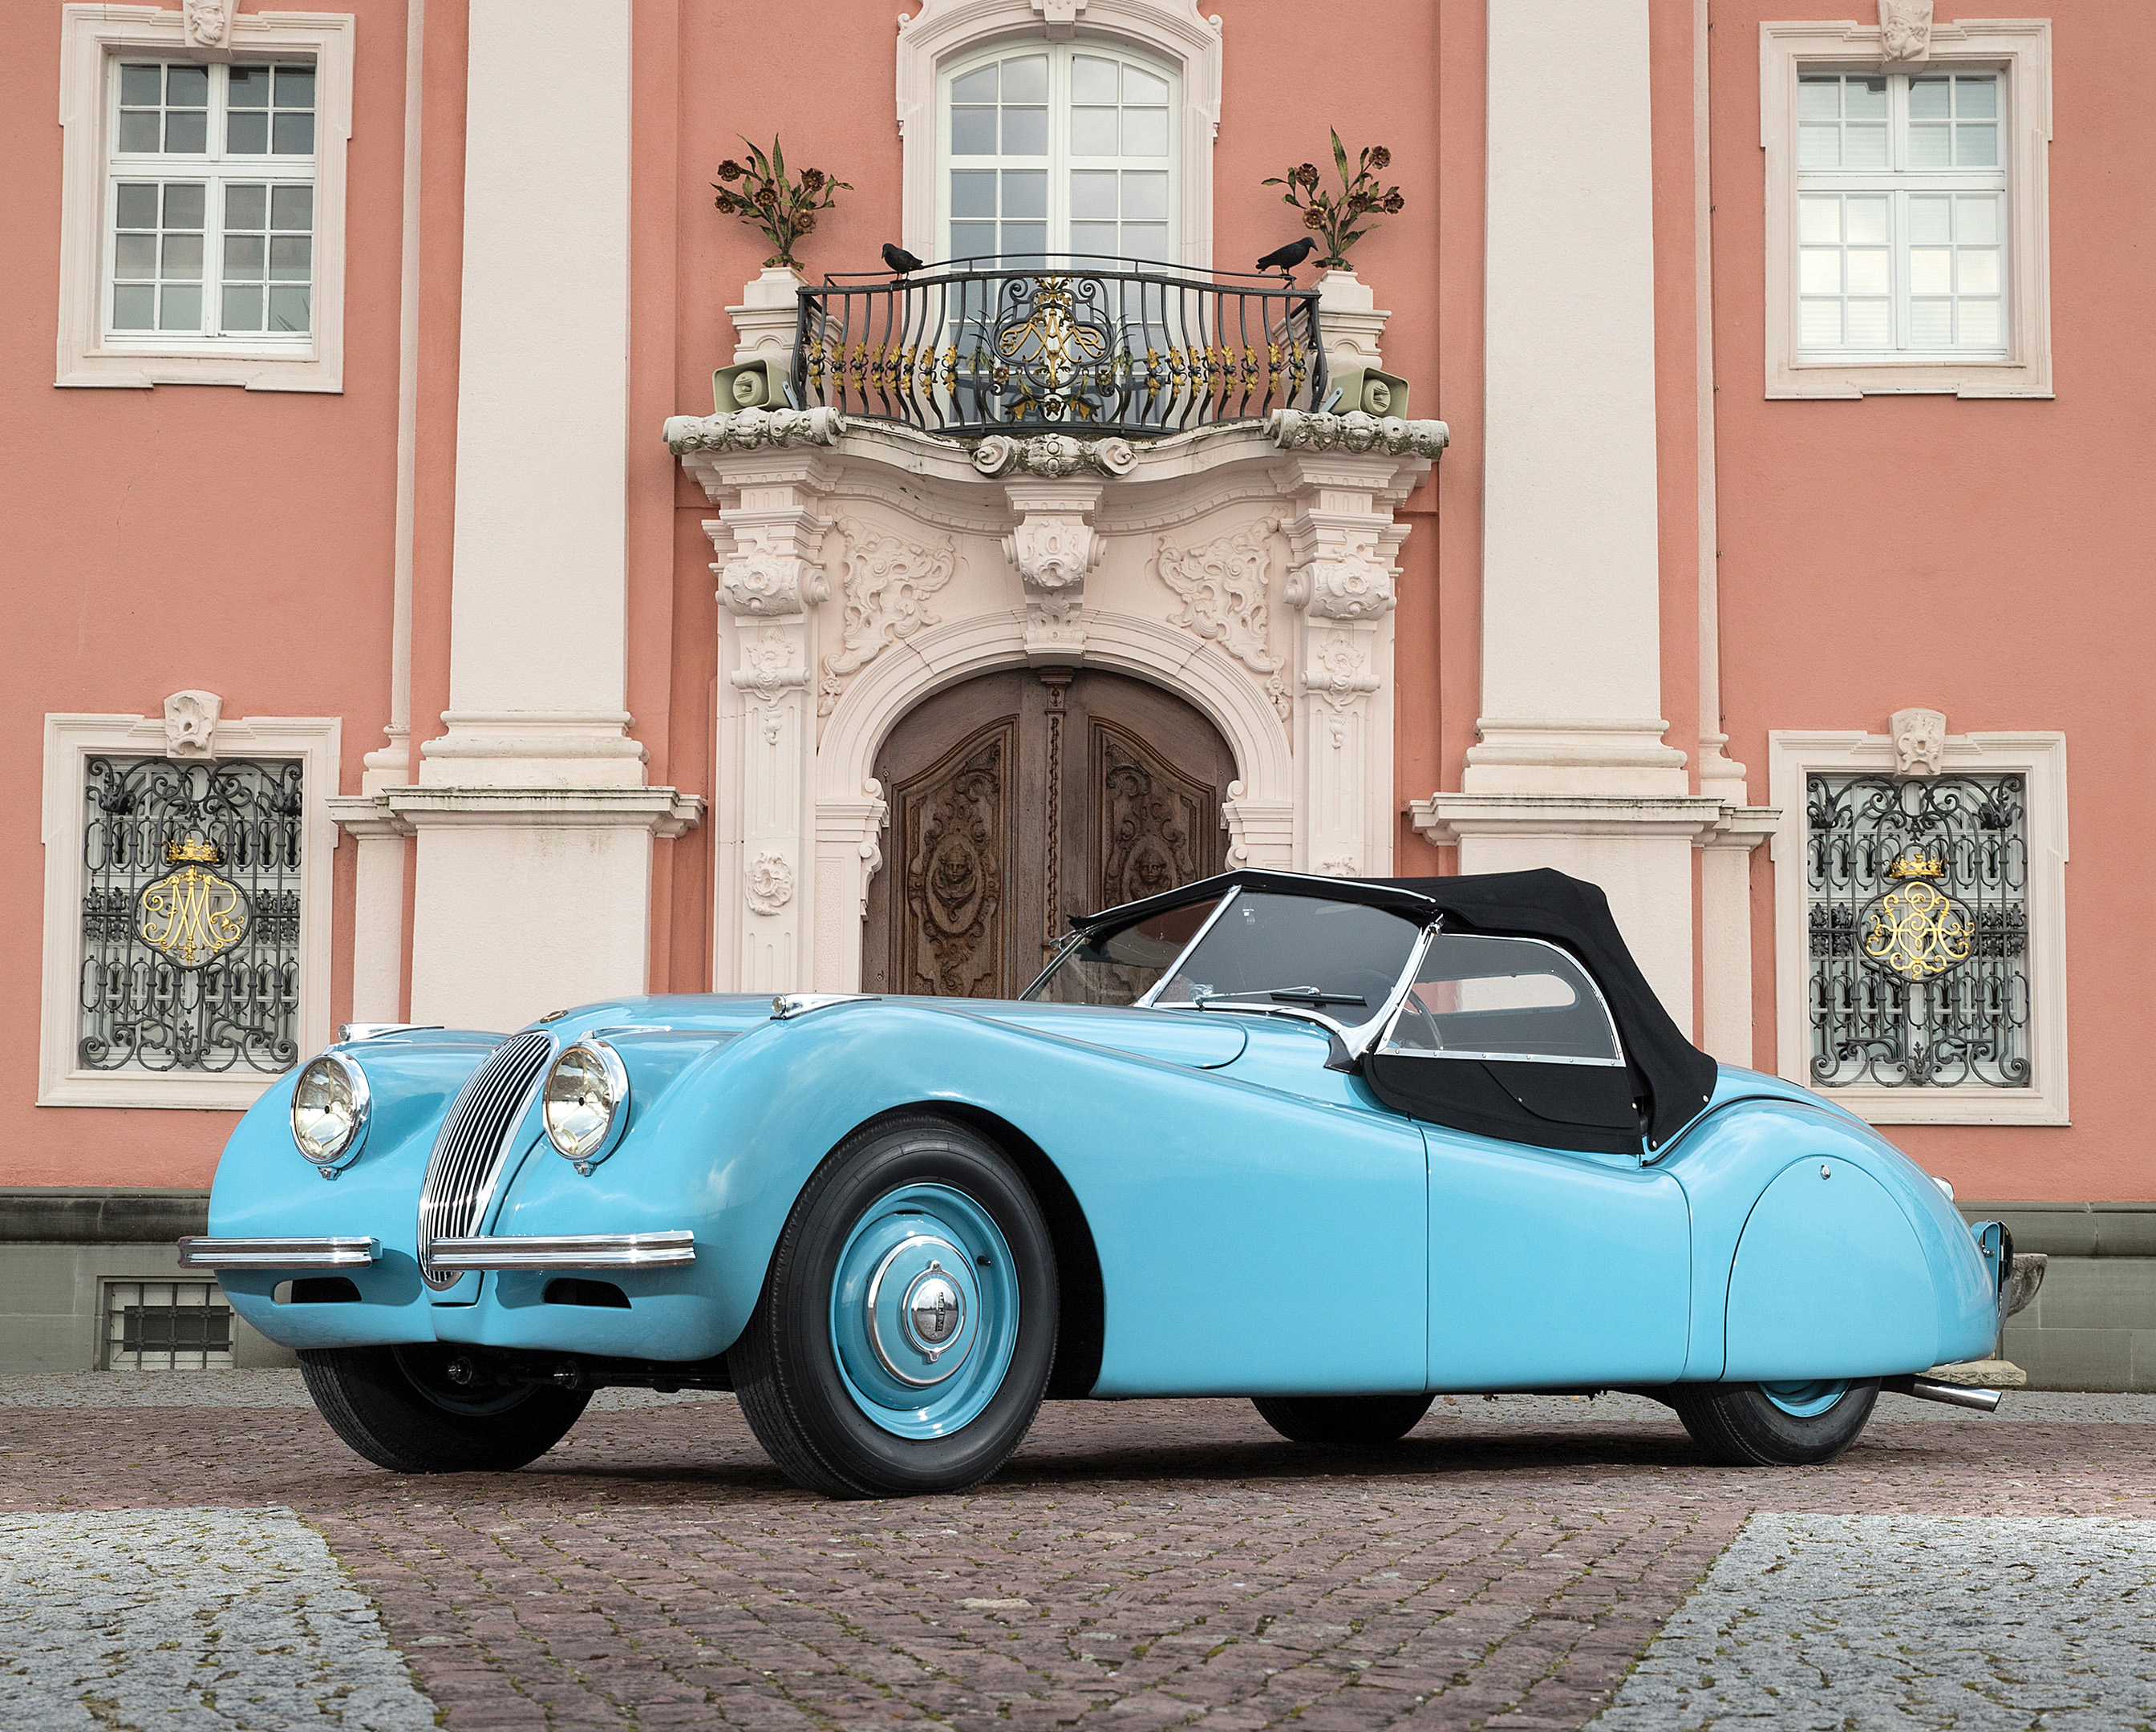 Pastel Blue Xk120 To Be Auctioned Owen Automotive Canada